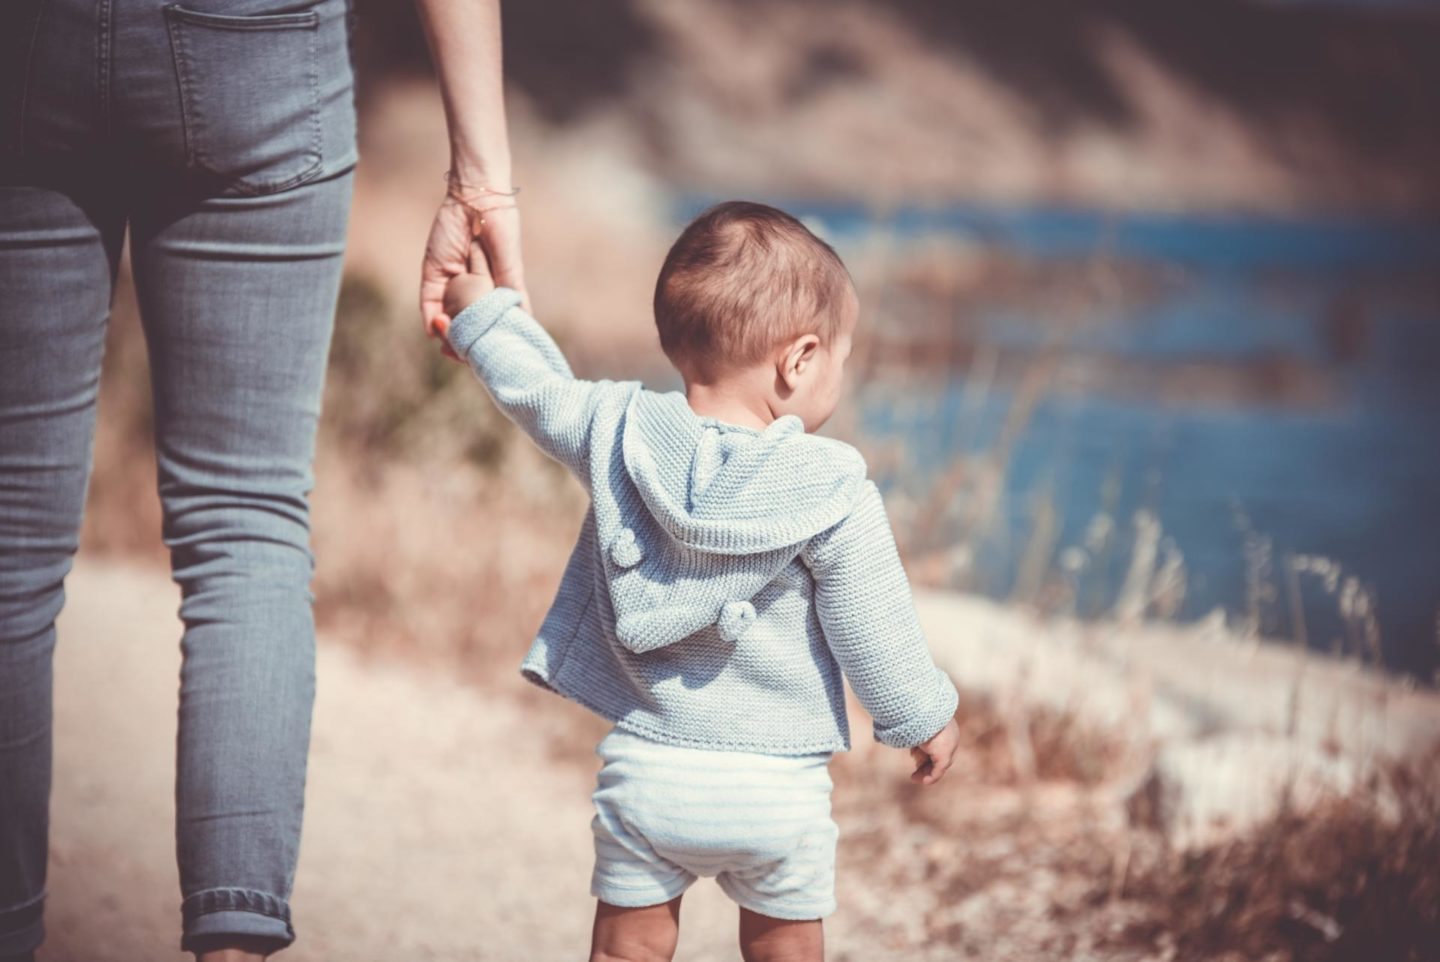 What are the universal laws about the adoption of children?